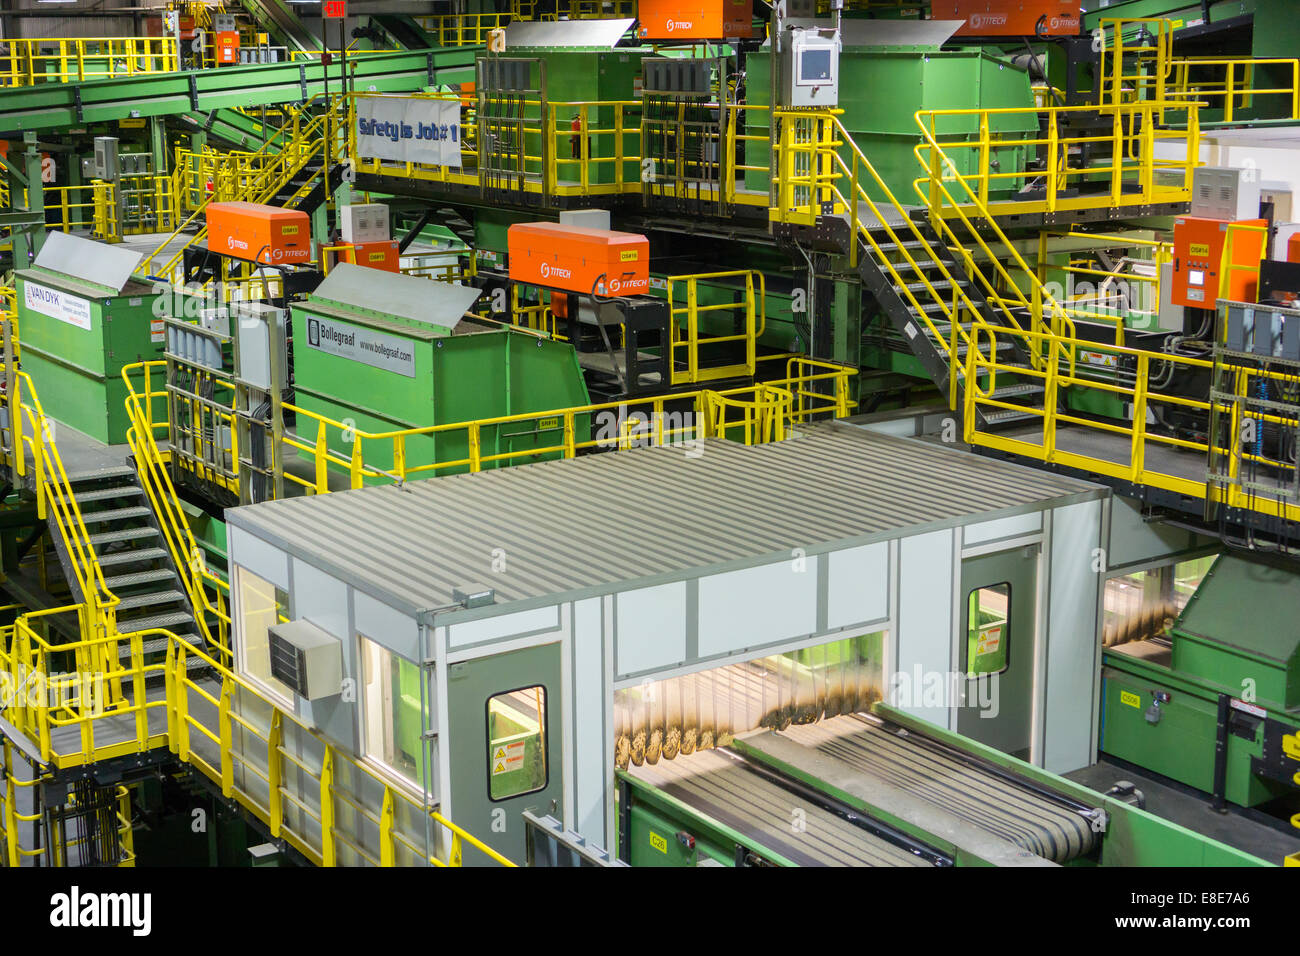 Machinery to process recyclables from the city's curbside recycling program - Stock Image